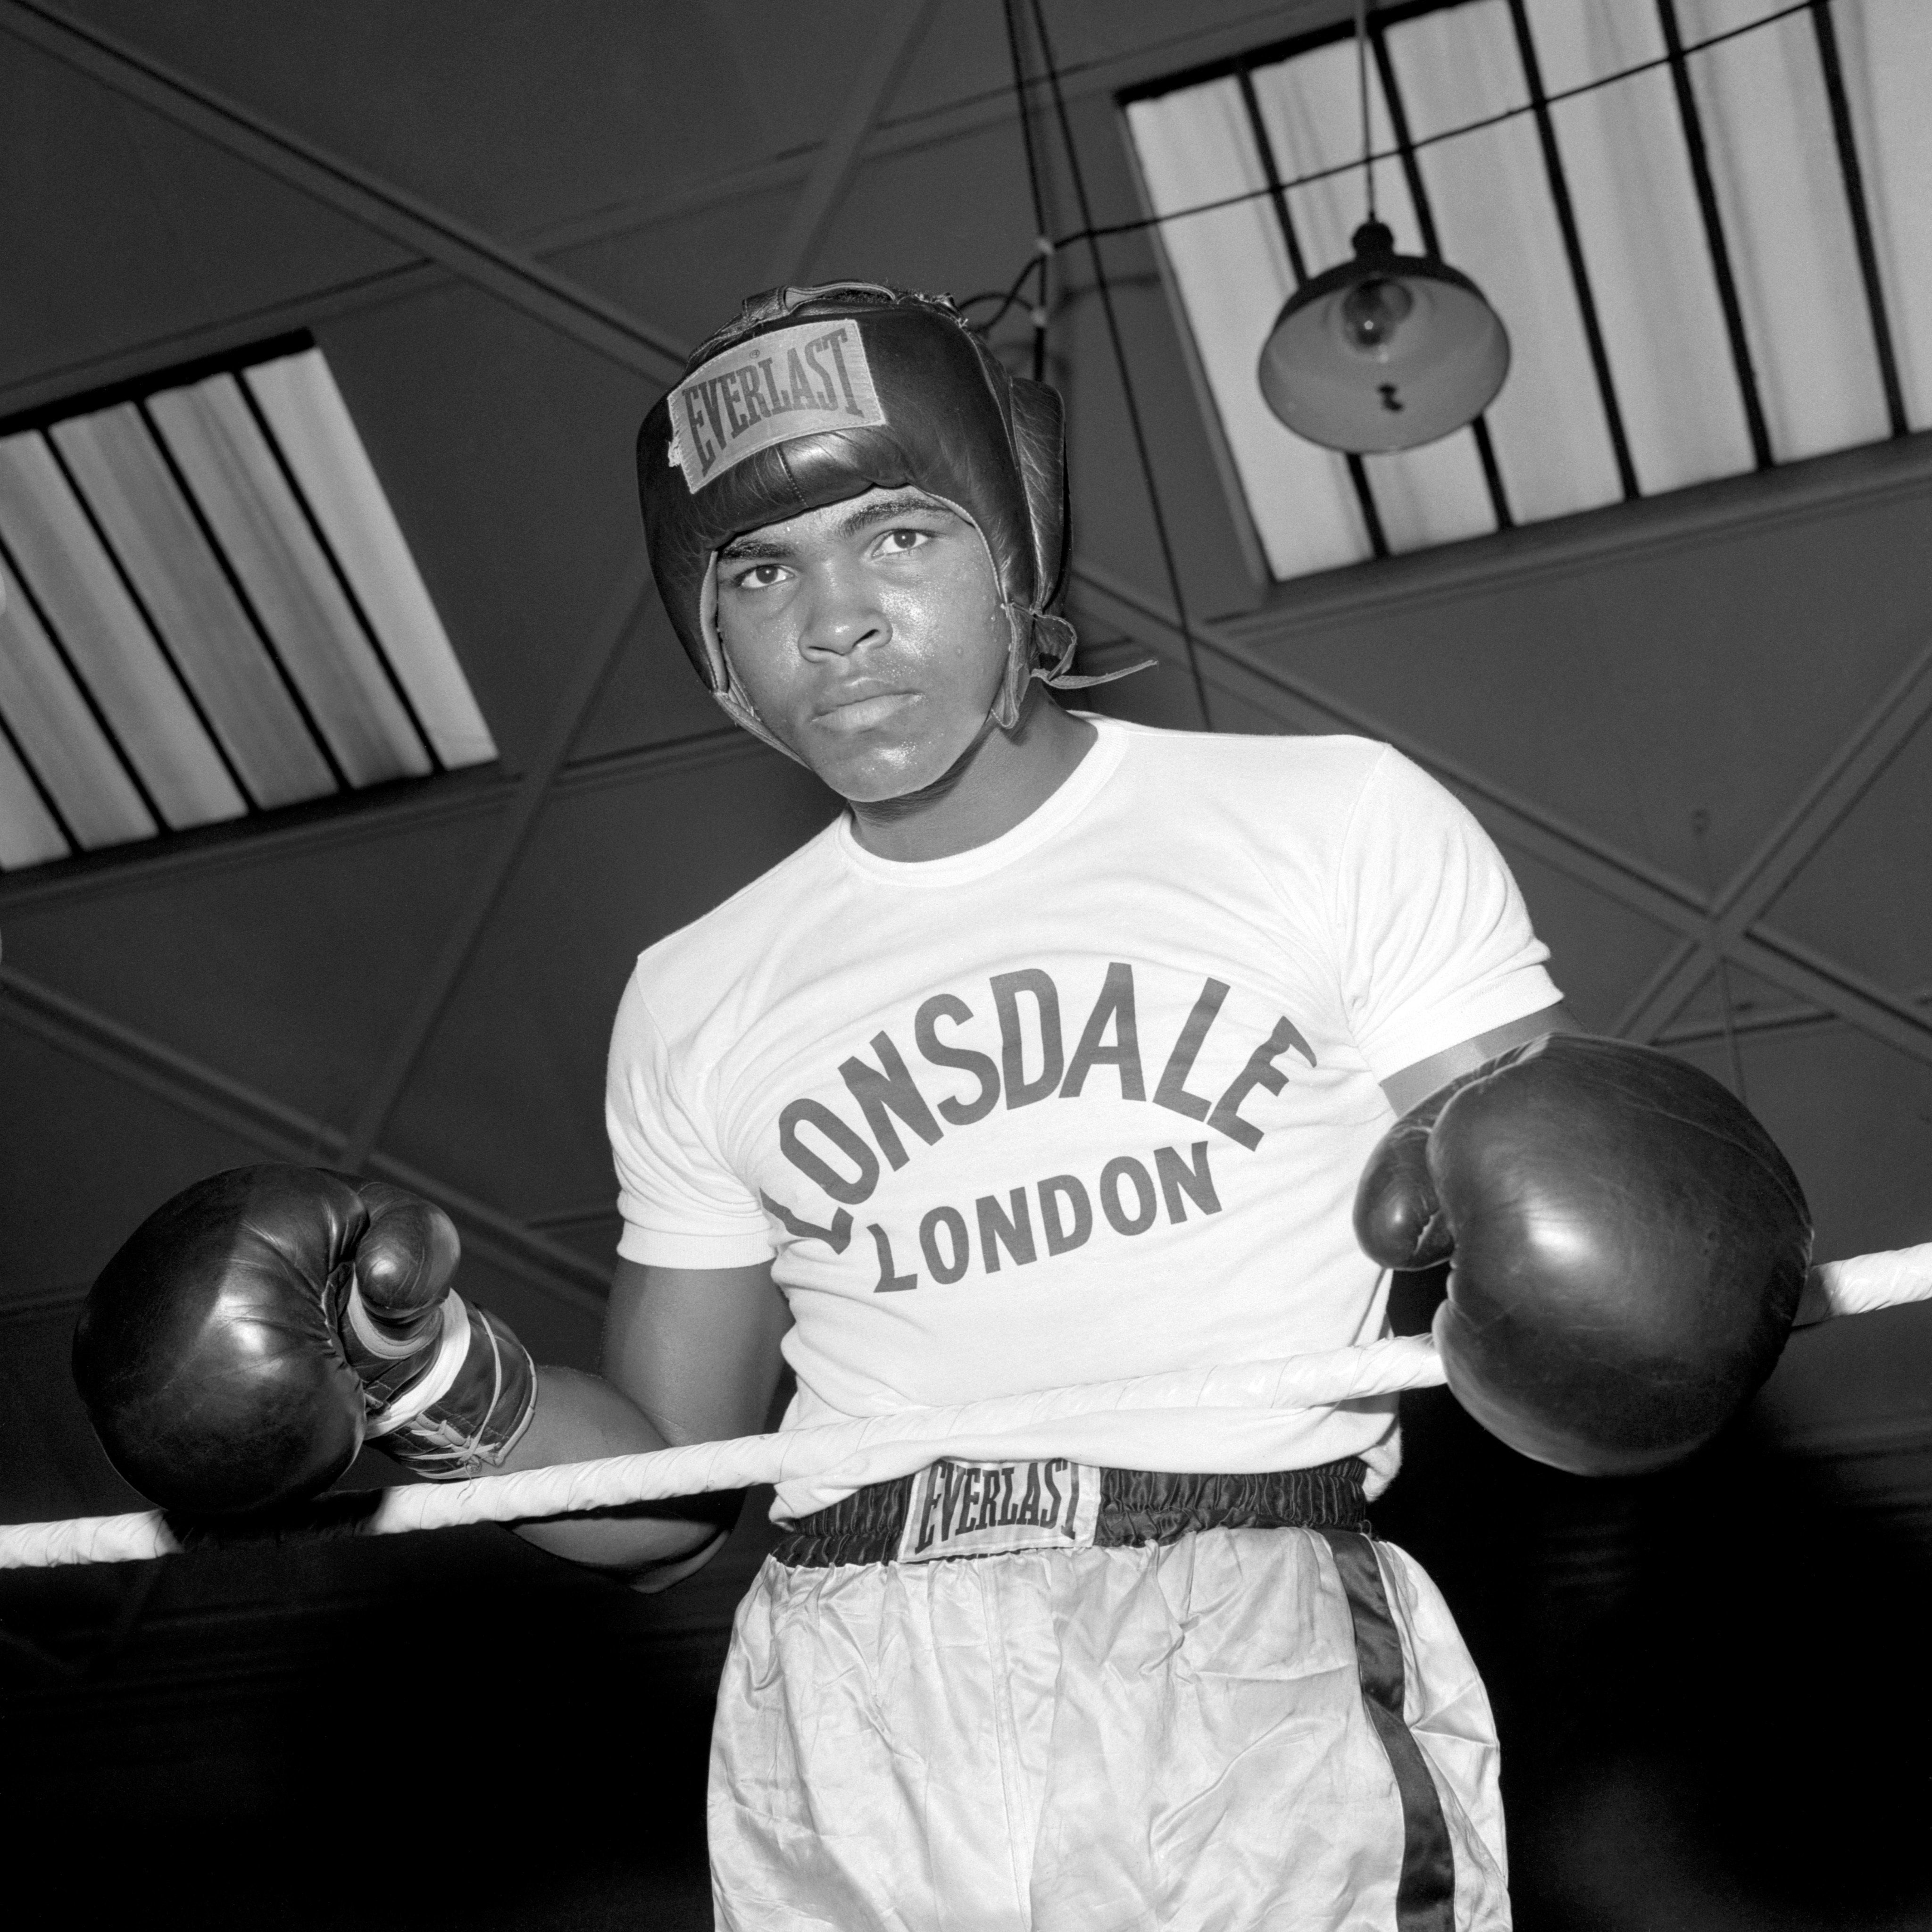 The great fists of American boxer Muhammad Ali (formerly Cassius Clay) are ready to do battle. Here he is seen in sparring attitude for his Heavyweight Championship of the World fight against Britain's Henry Cooper at Highbury Stadium, London.